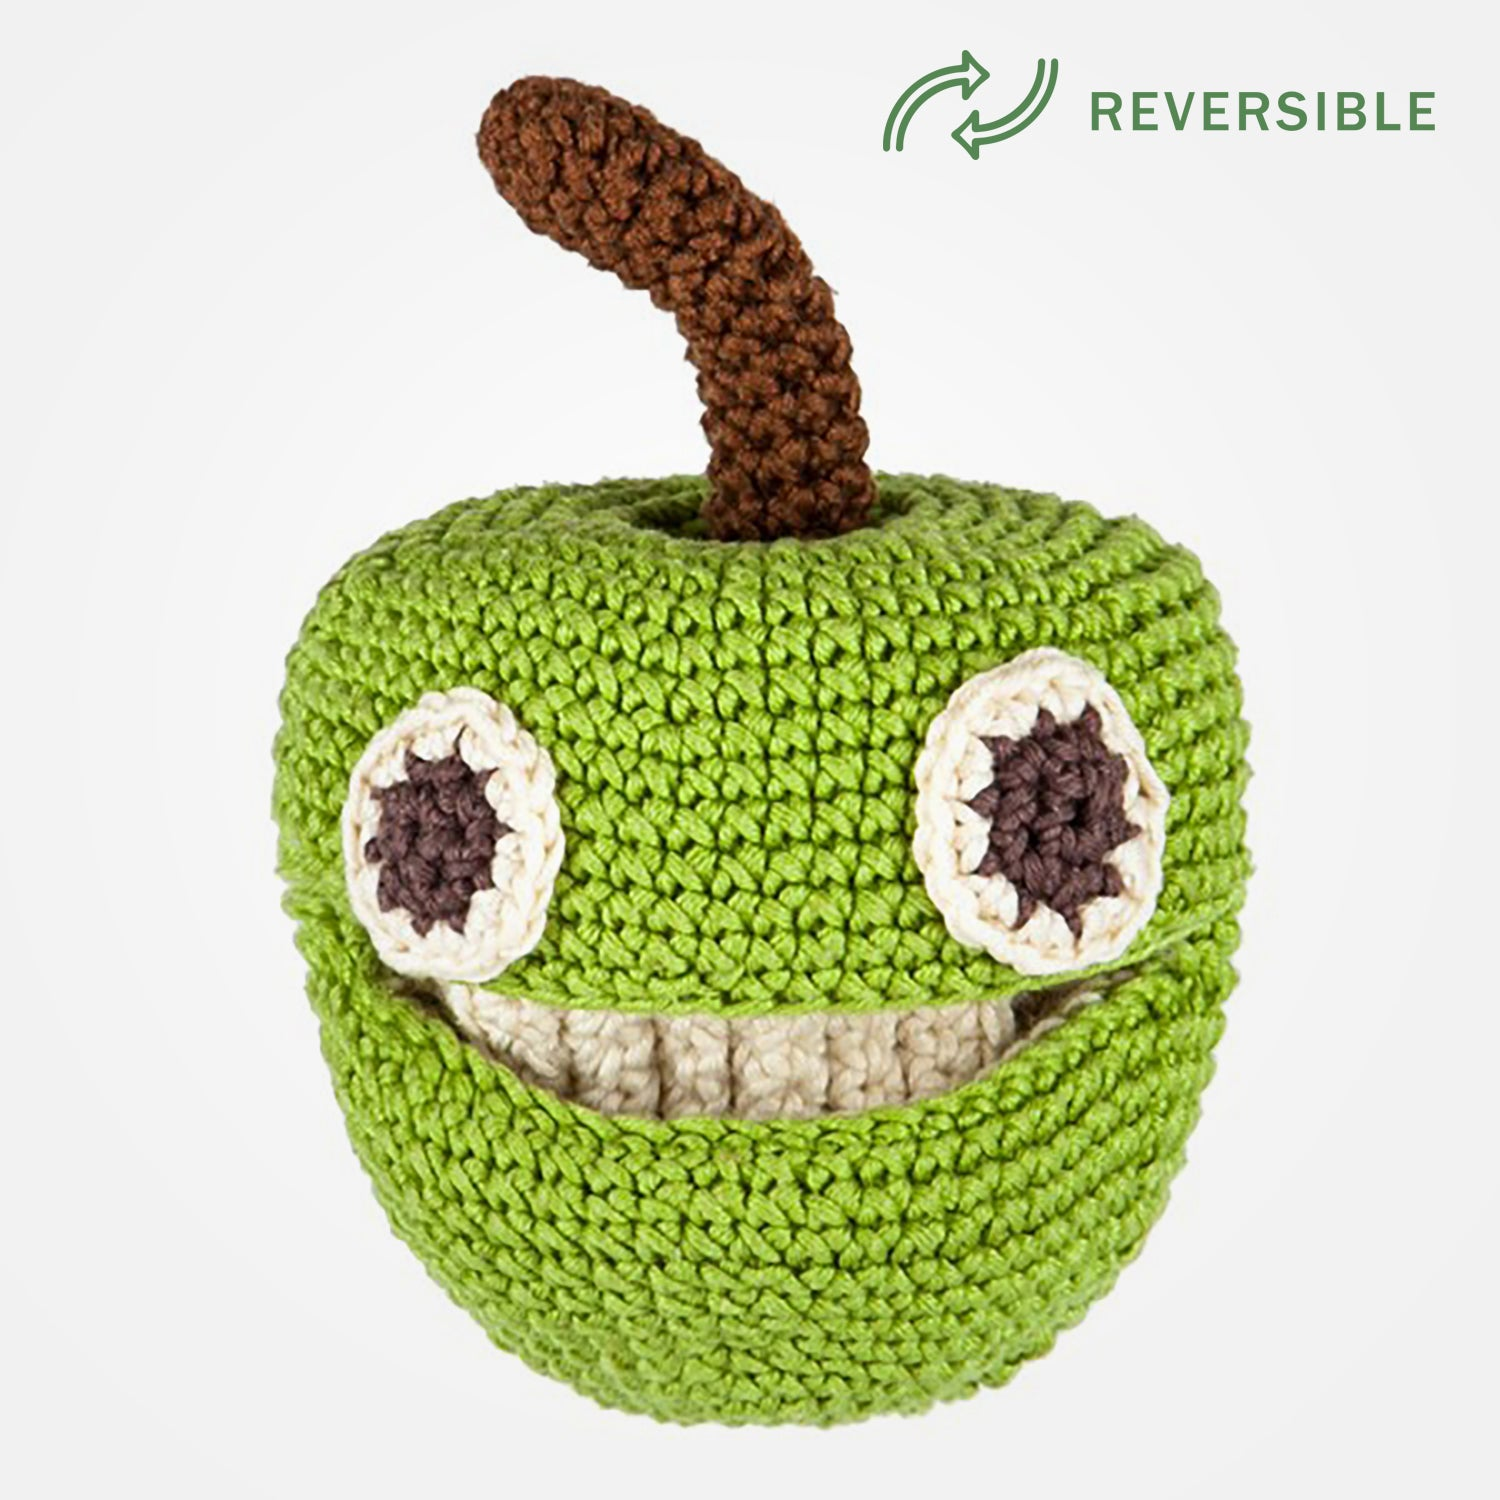 Alice The Apple (Reversible) - Organic Soft Toy by MyuM